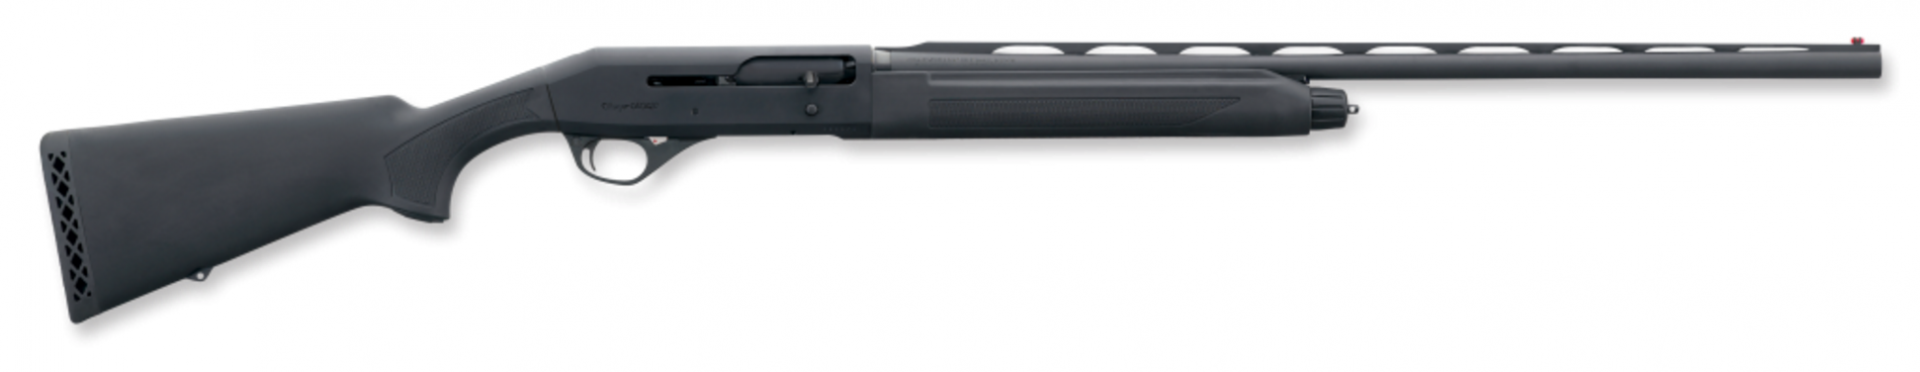 "Stoeger M3020 |20ga 26"" Barrel, 3"" Chamber, Black Synthetic Stock, Inertia System, IC, M, XFT Chokes + Wrench"